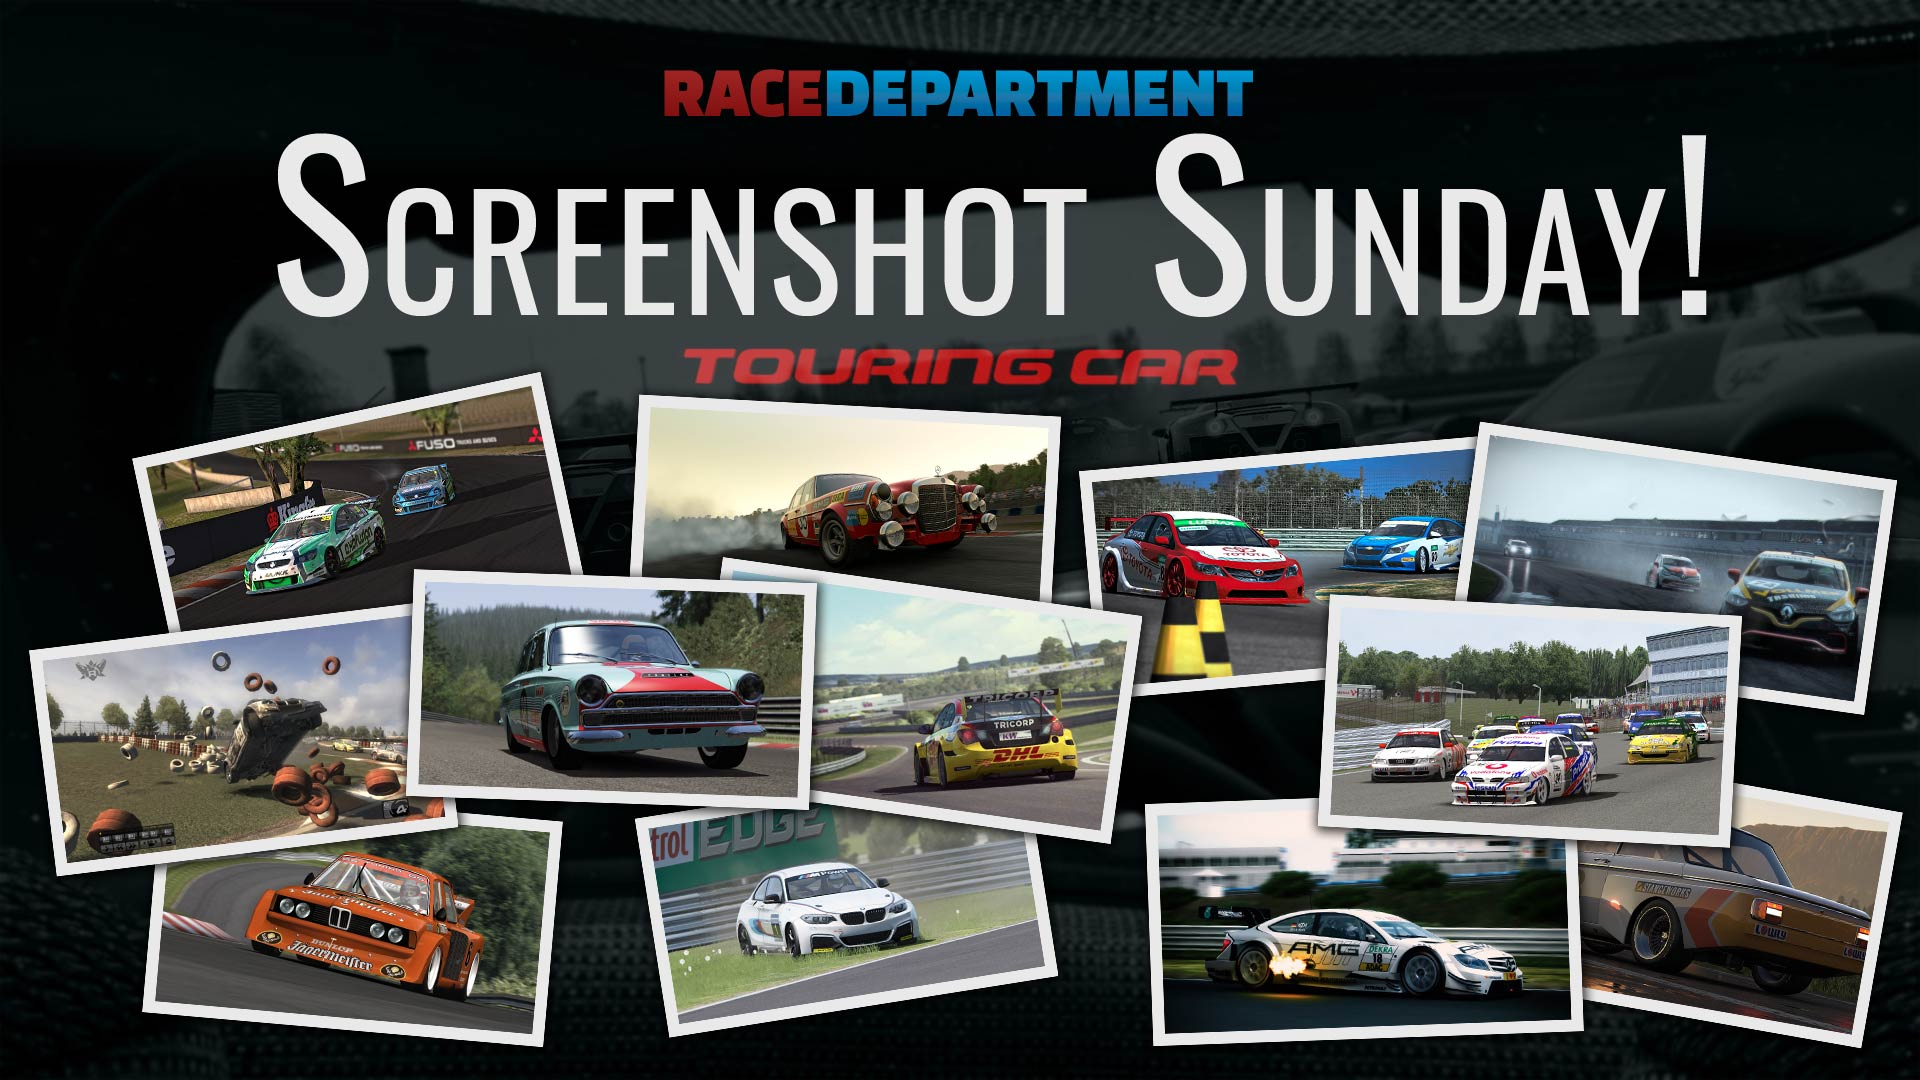 Screenshot Sunday - Touring Cars.jpg